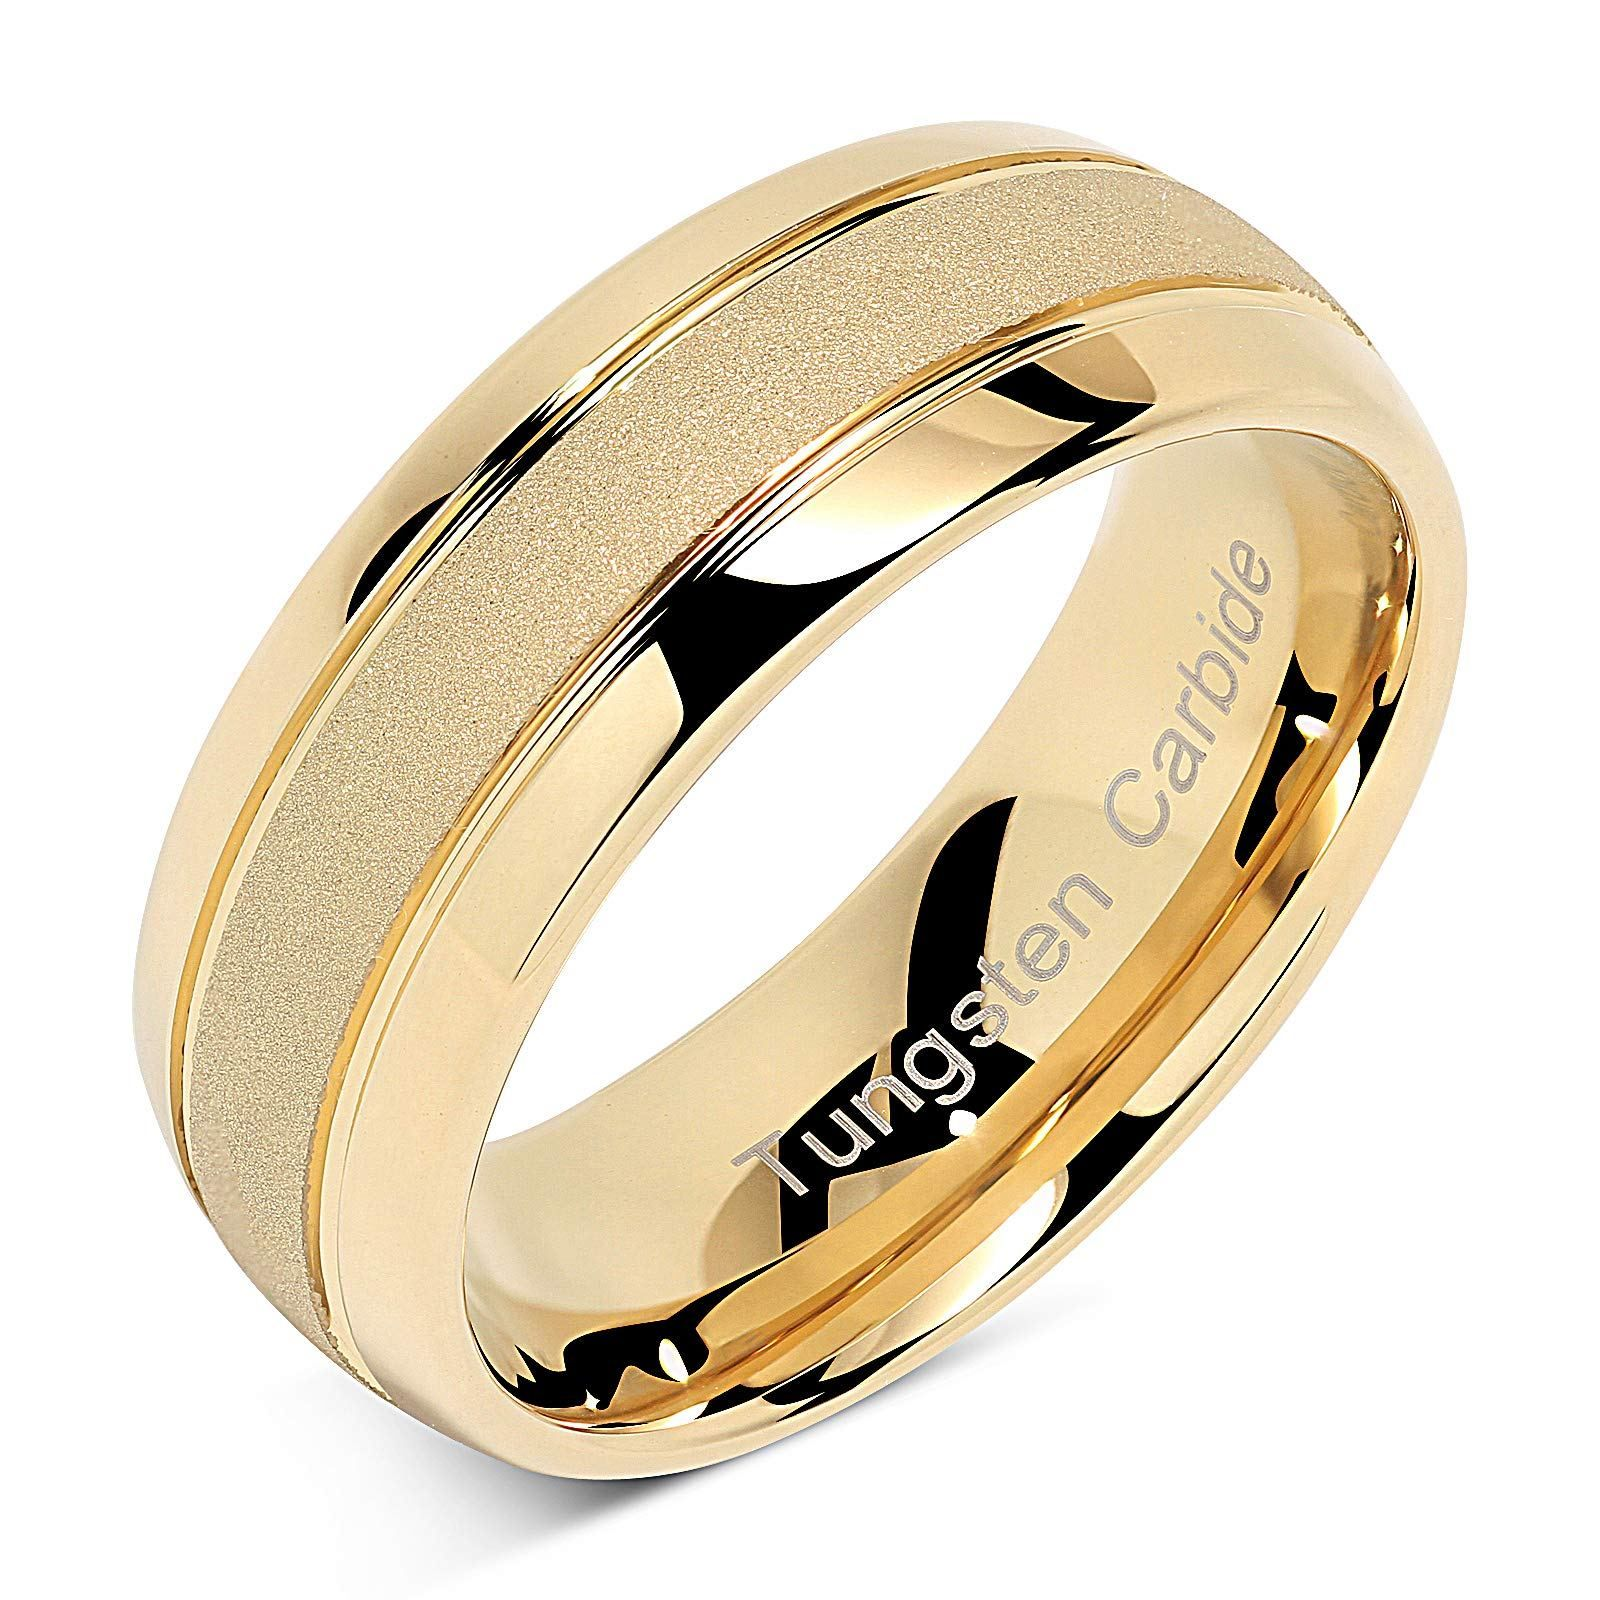 100s Jewelry Tungsten Rings For Men Women Gold Wedding Band Sandblasted Finish Dome Edge Sizes 6 16 Lovely Novelty Tungsten Mens Rings Rings For Men Womens Engagement Rings